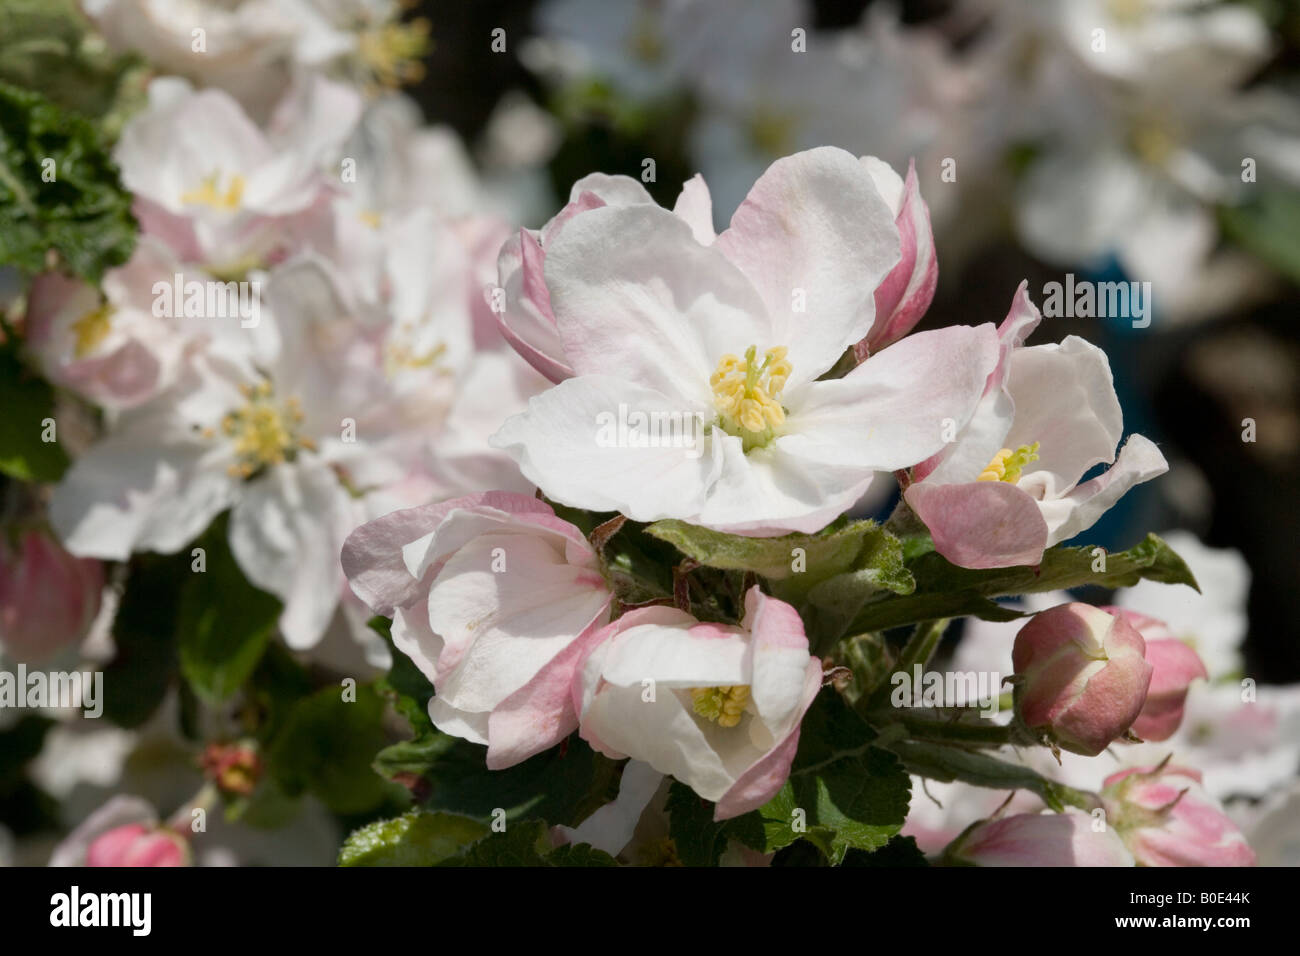 Blooming apple tree in an orchard - Stock Image